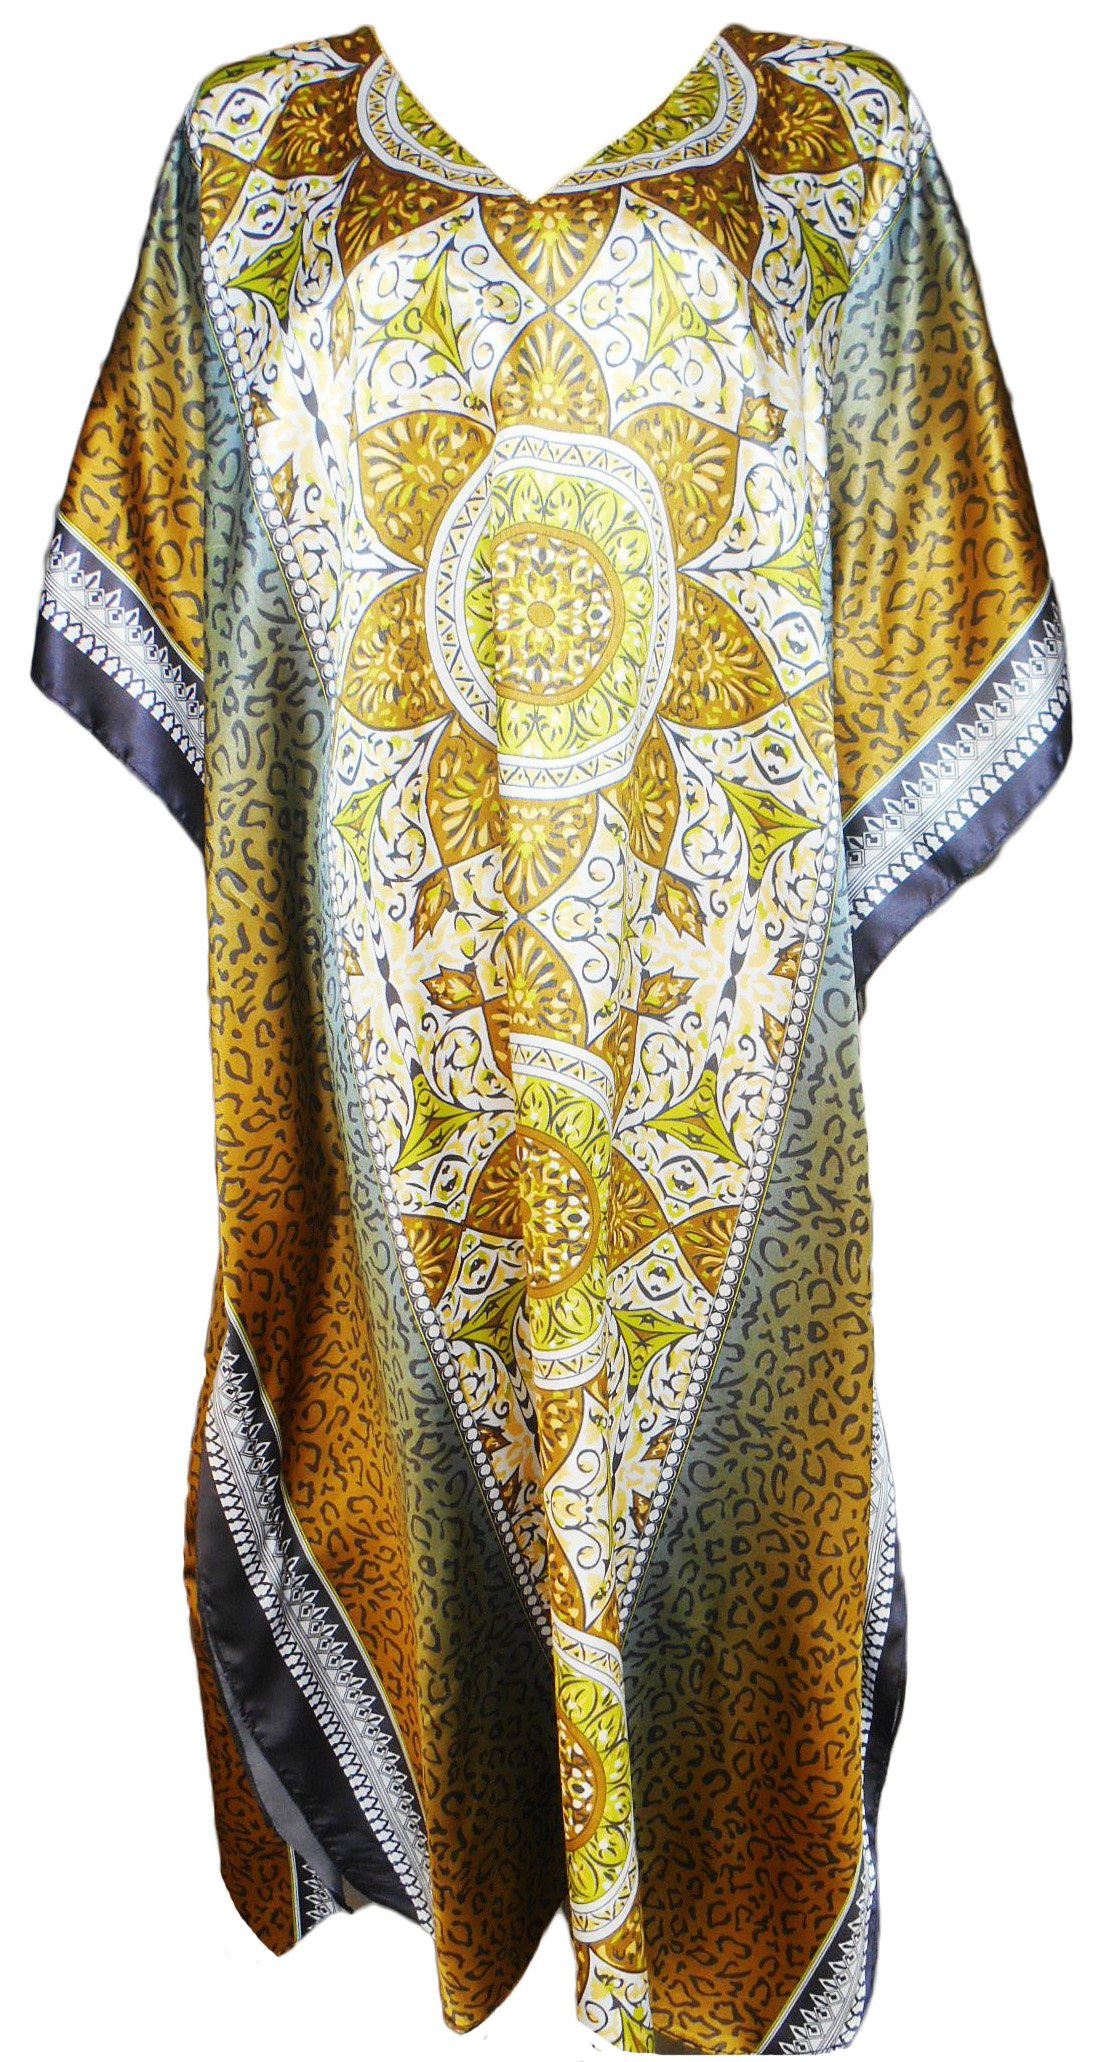 Up2date Fashion Caftan in Antique Forrestal Print, Style Caf-84C2